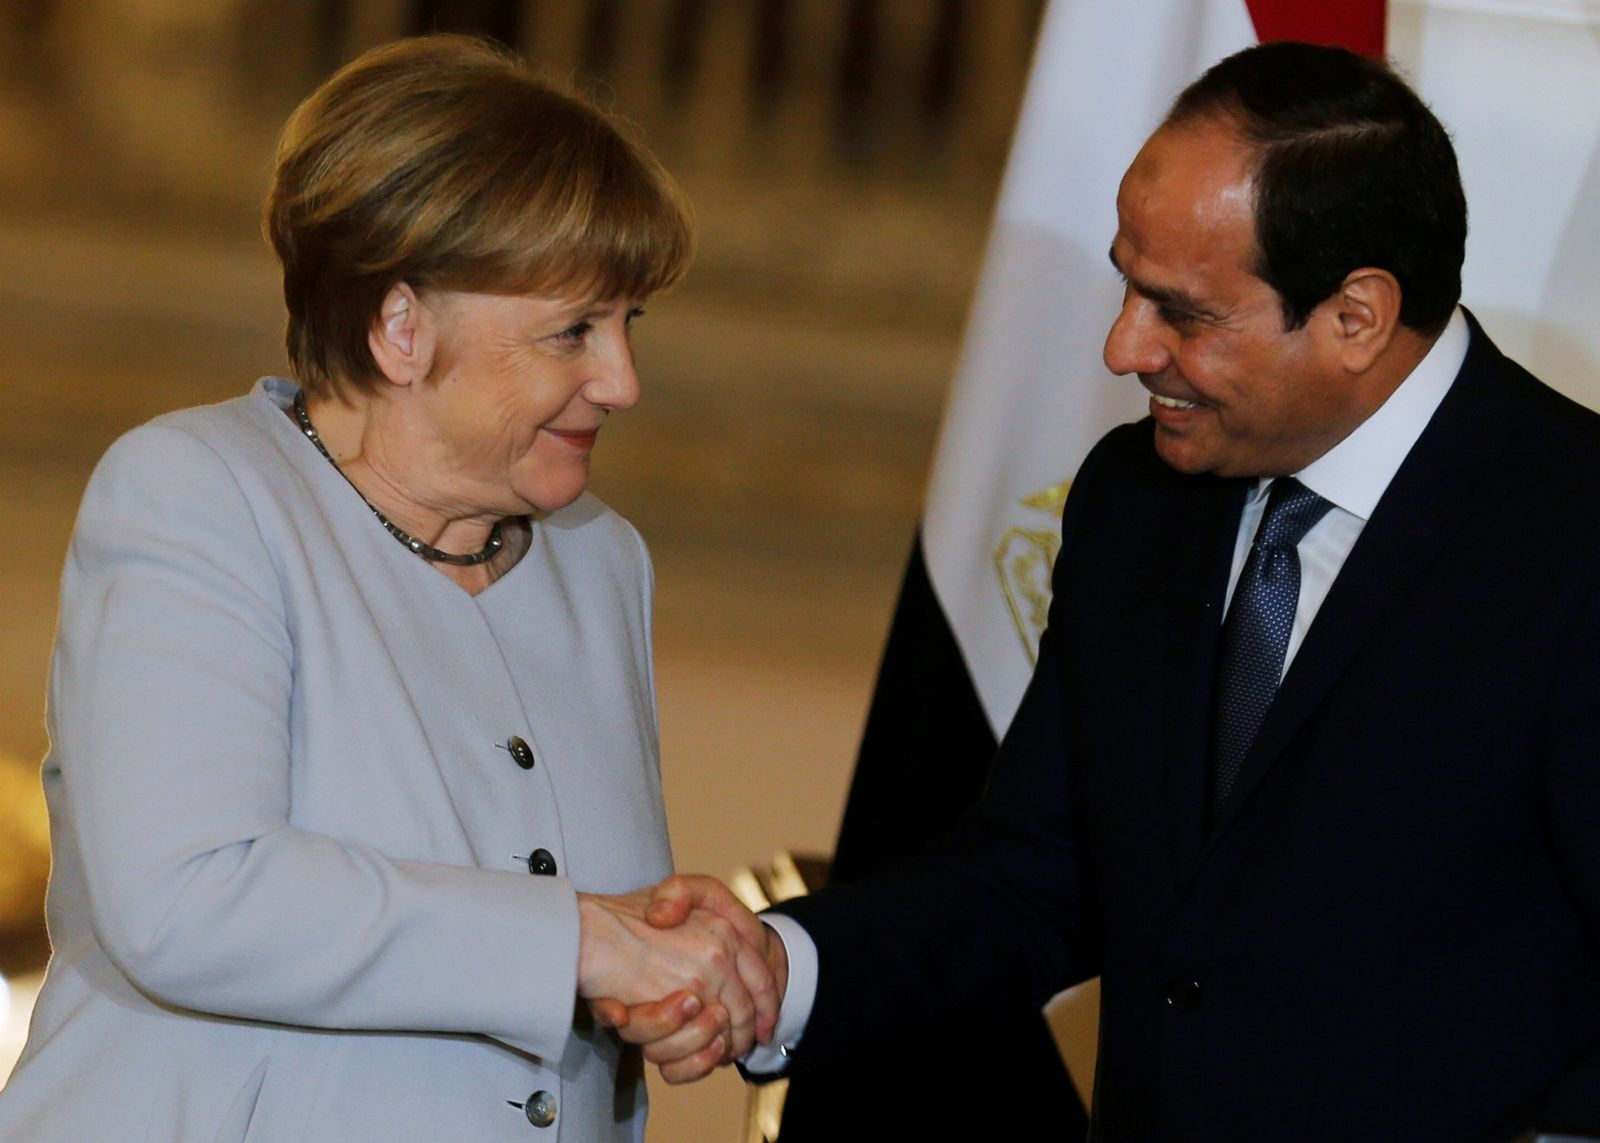 EGYPT-GERMANY/MERKEL